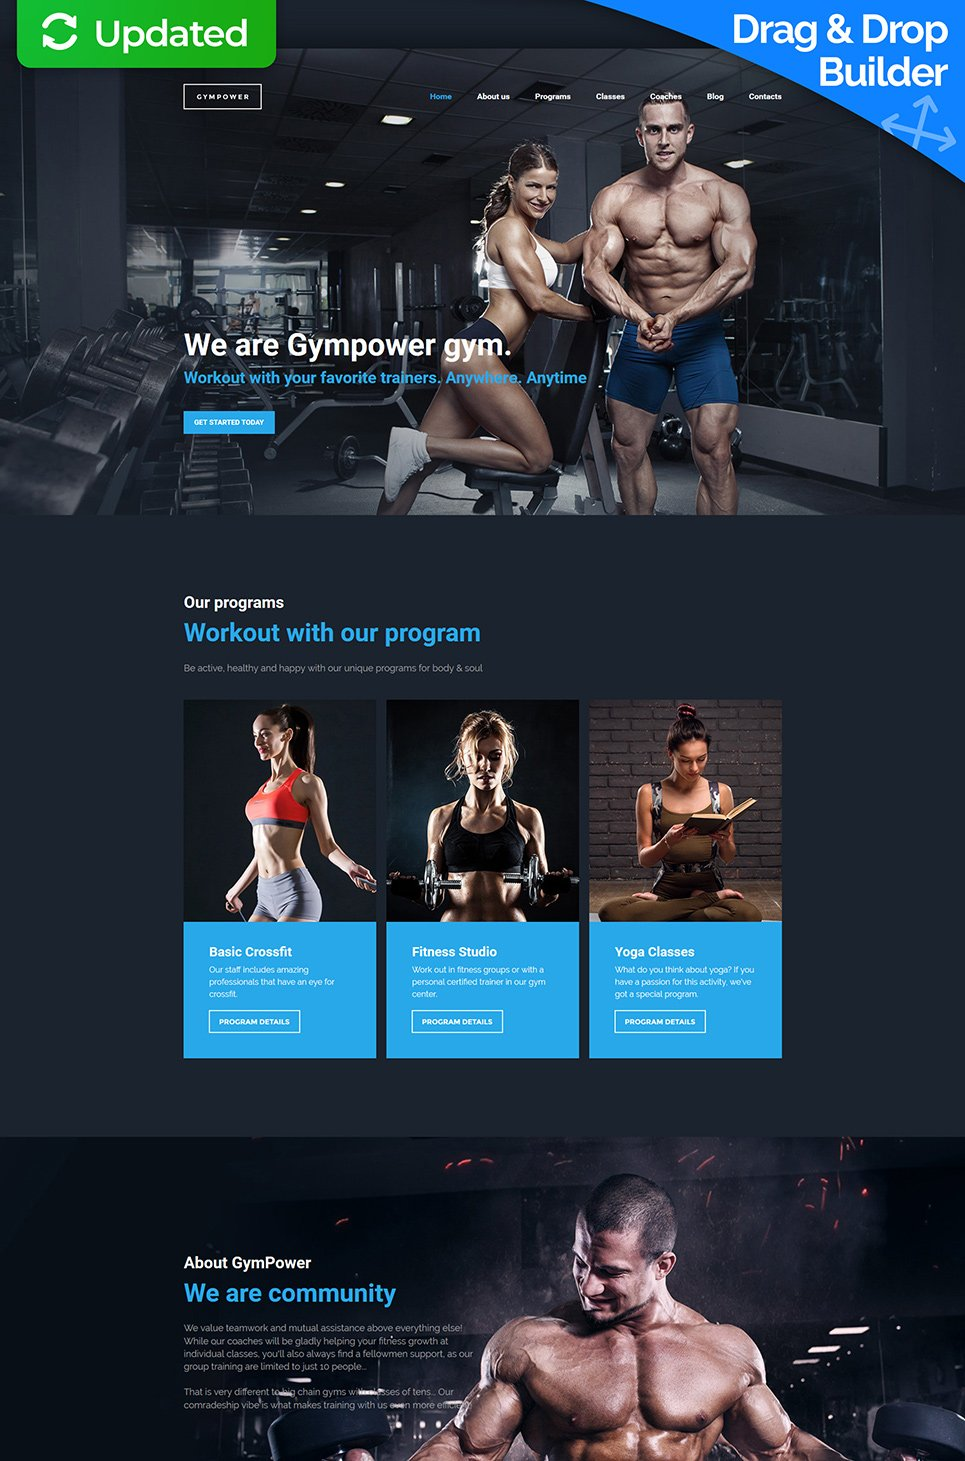 Gympower - Fitness & Bodybuilding Website Design - image